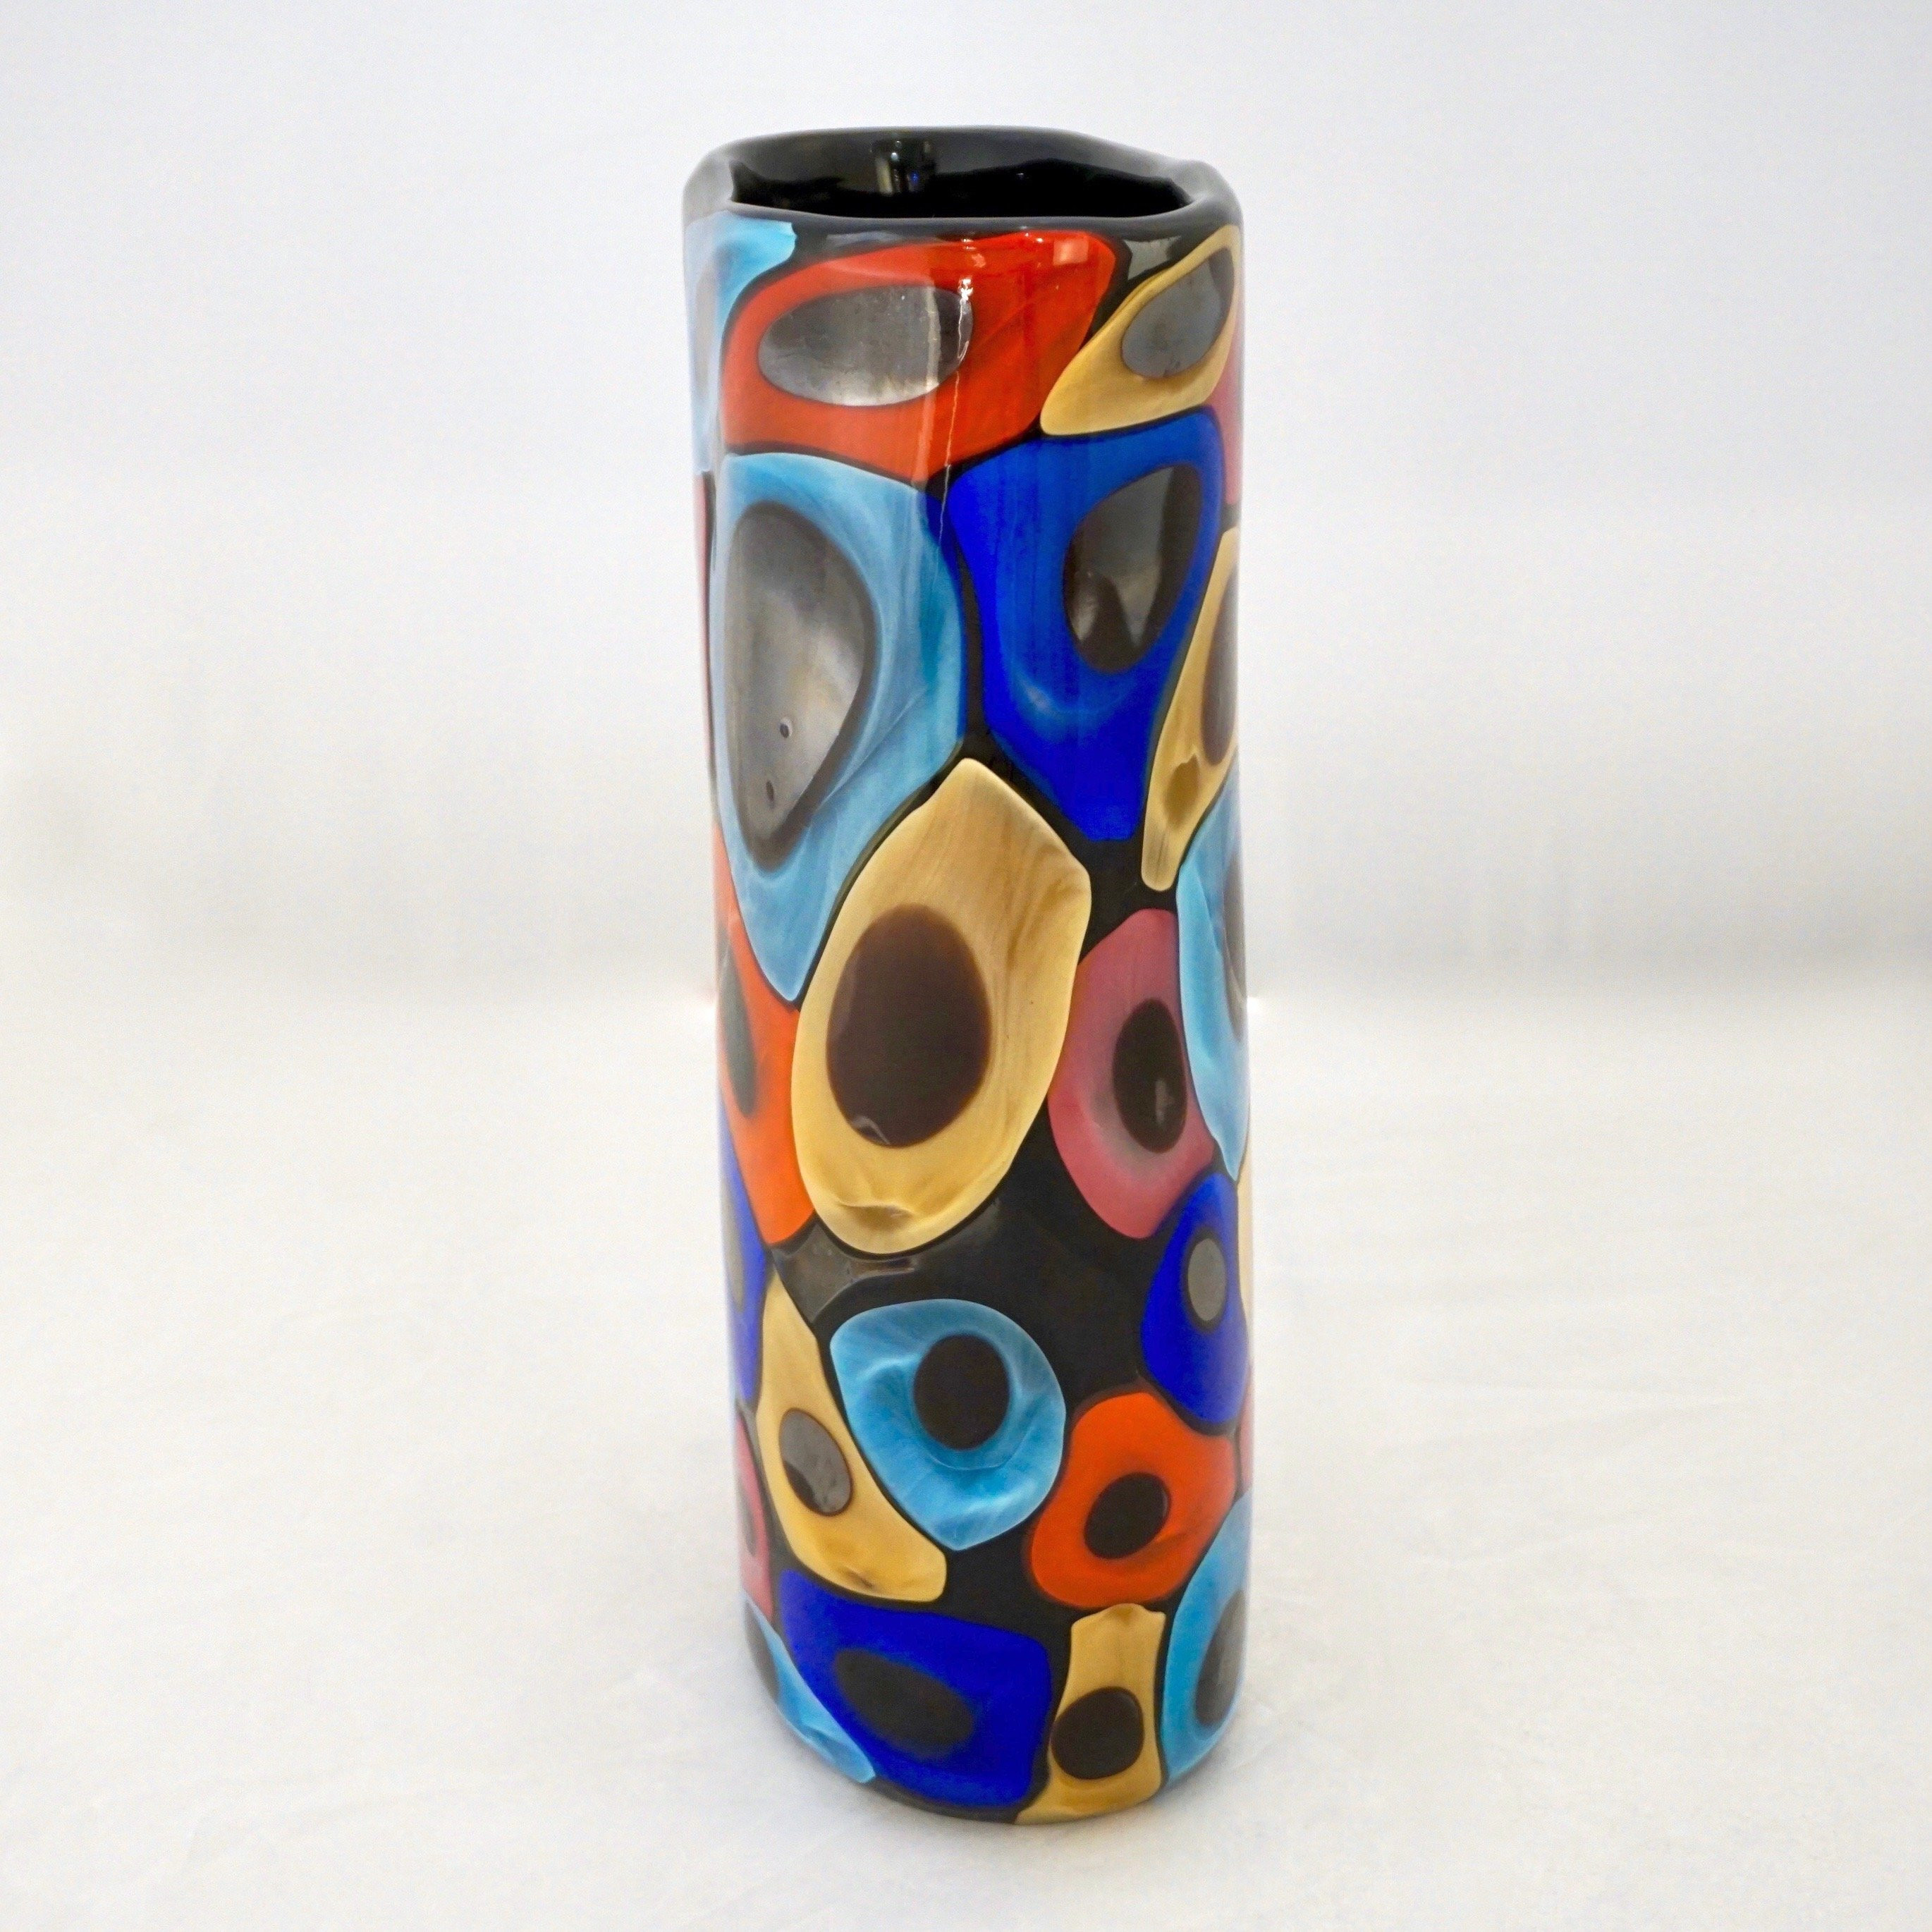 blue glass vase set of camozzo 1990 modern black azure blue red pink yellow murano glass regarding camozzo 1990 modern black azure blue red pink yellow murano glass vases for sale at 1stdibs